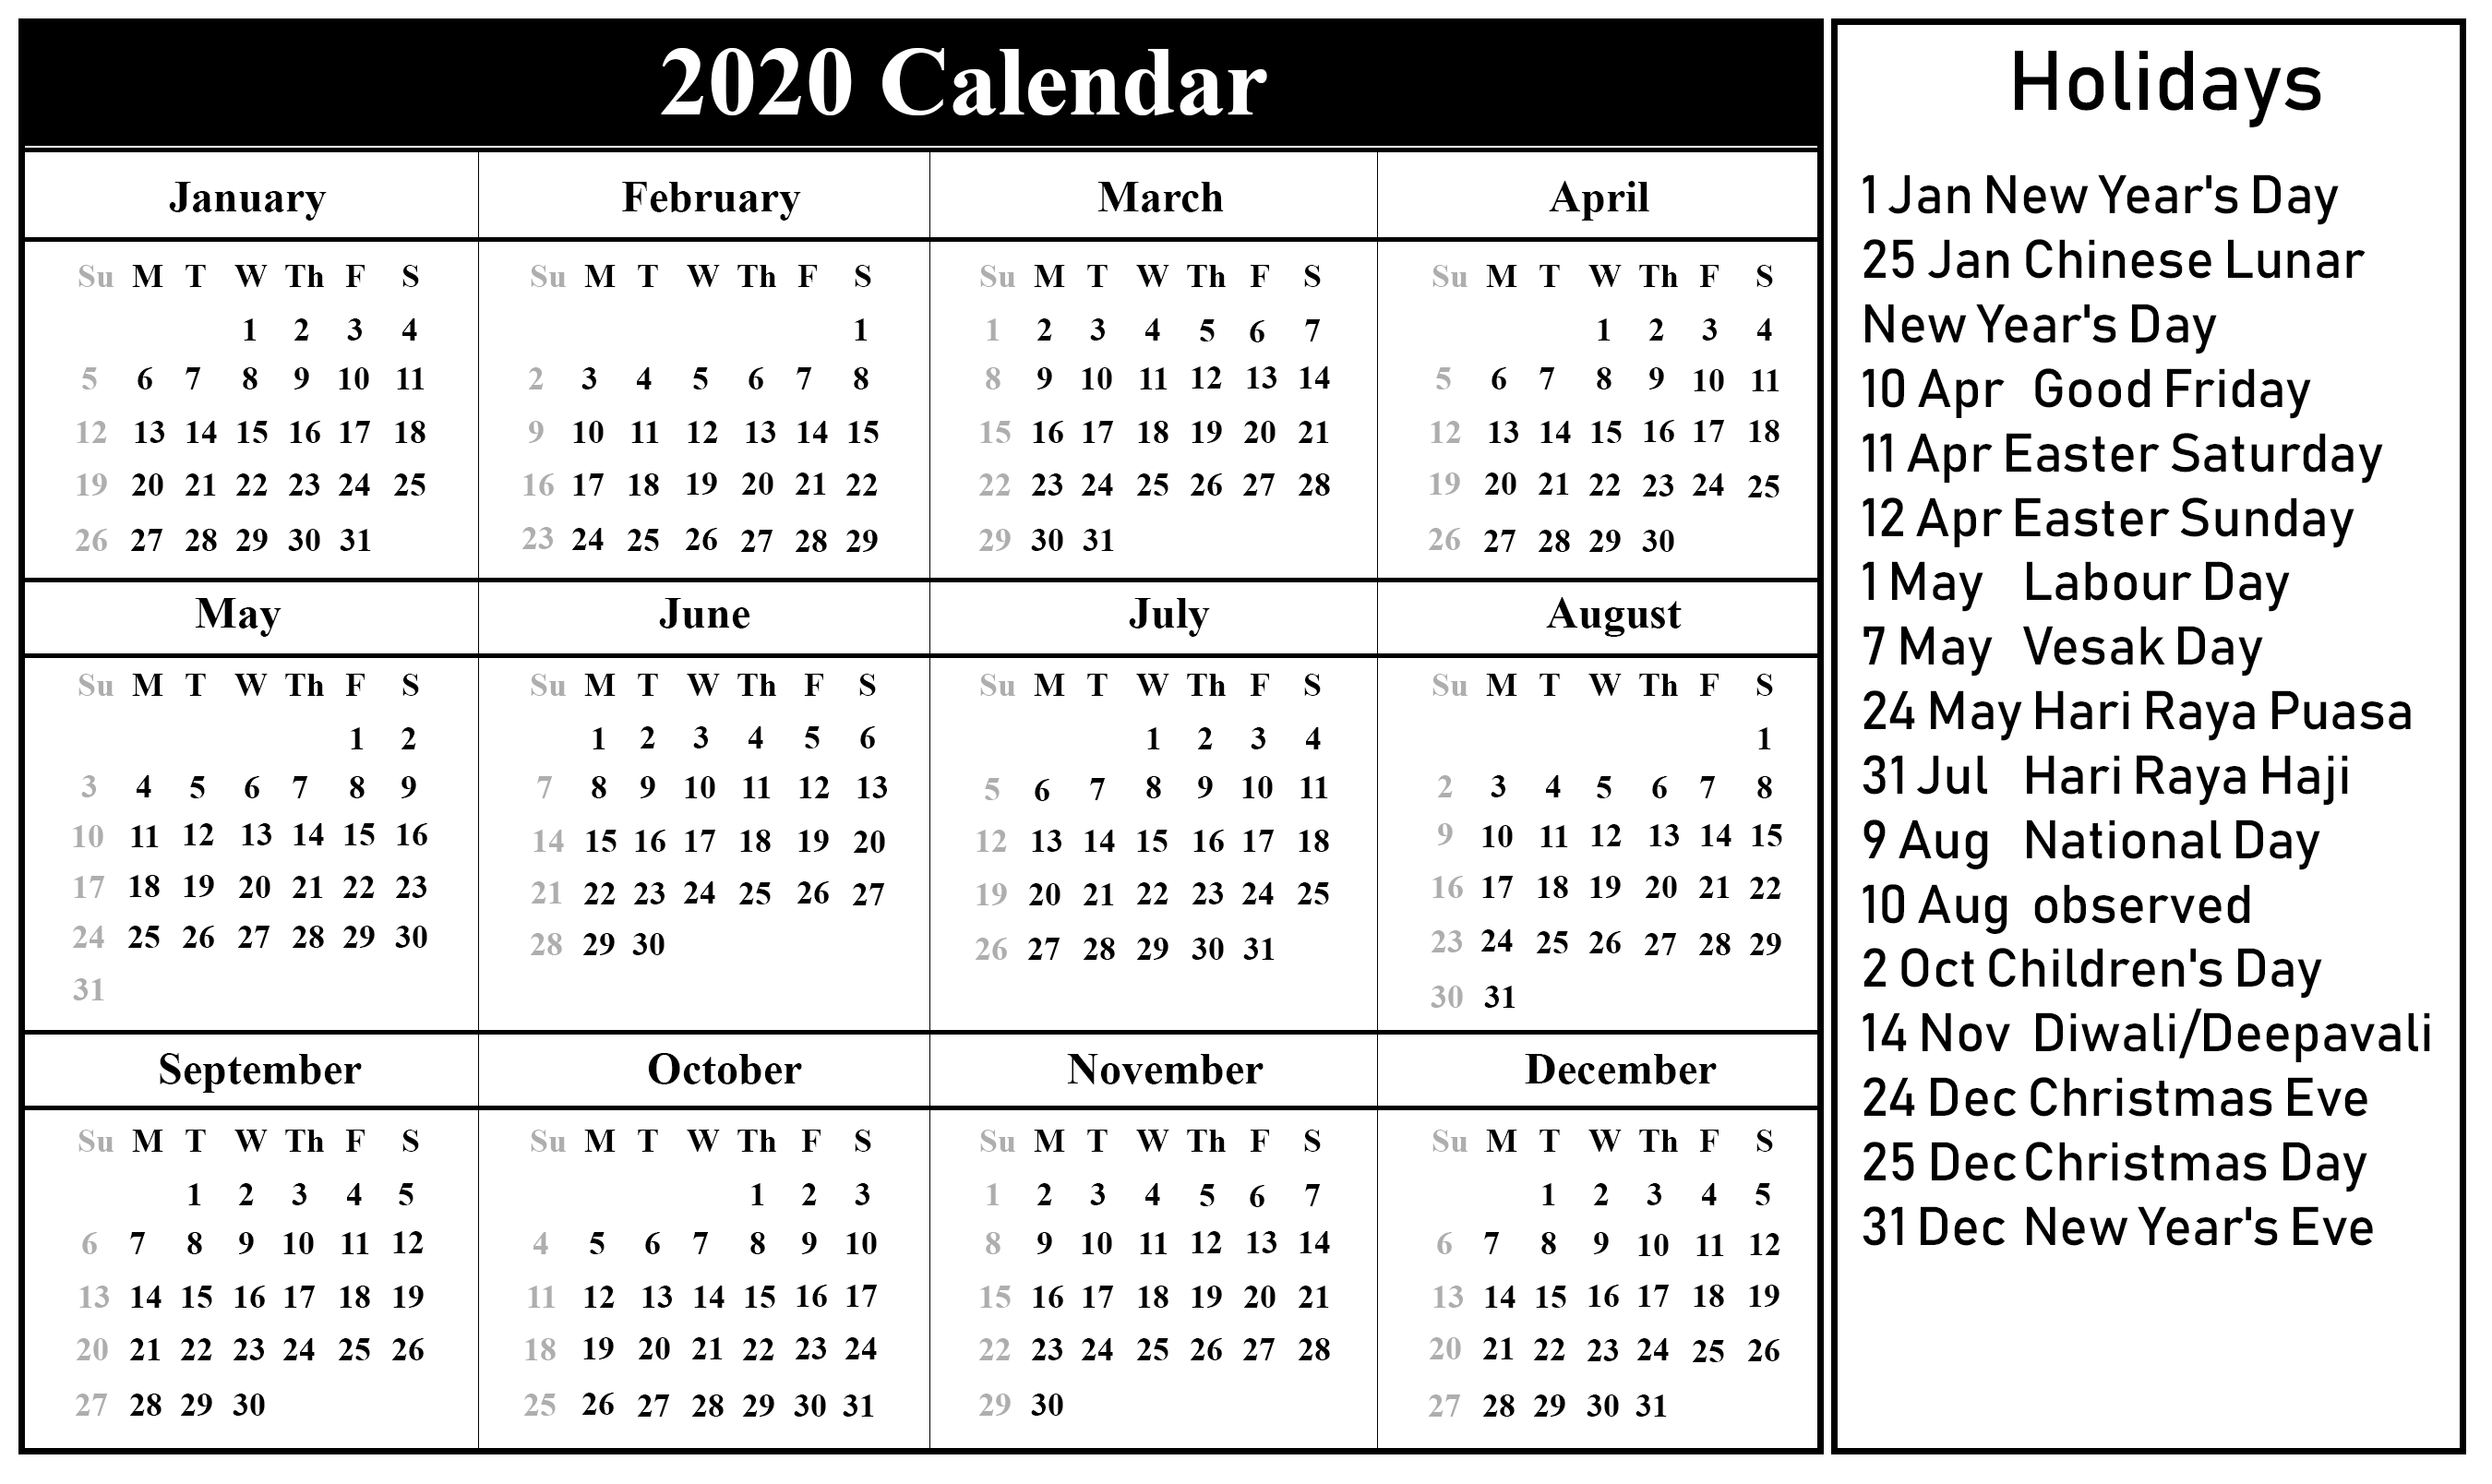 Printable 2020 Calendar With Holidays | Monthly Calendar for 2020 Calendar With Holidays Printable Free